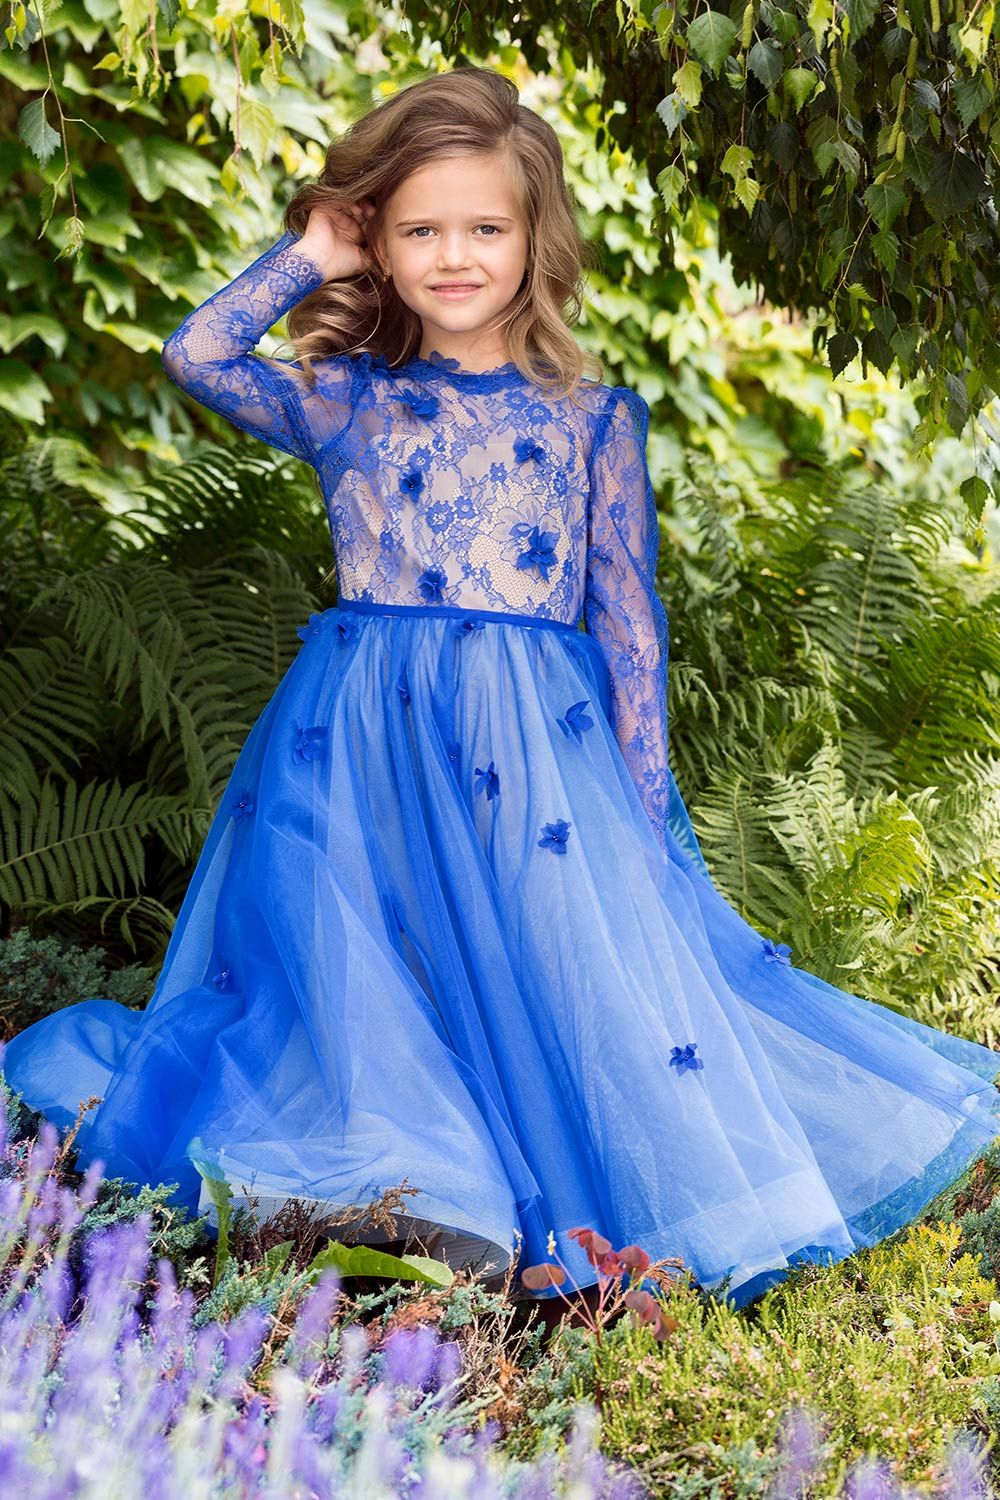 5927ffb0d72 A bright royal blue flower girl dress with long sleeves lace and handmade  flowers.  kidsfashion  flowergirldress